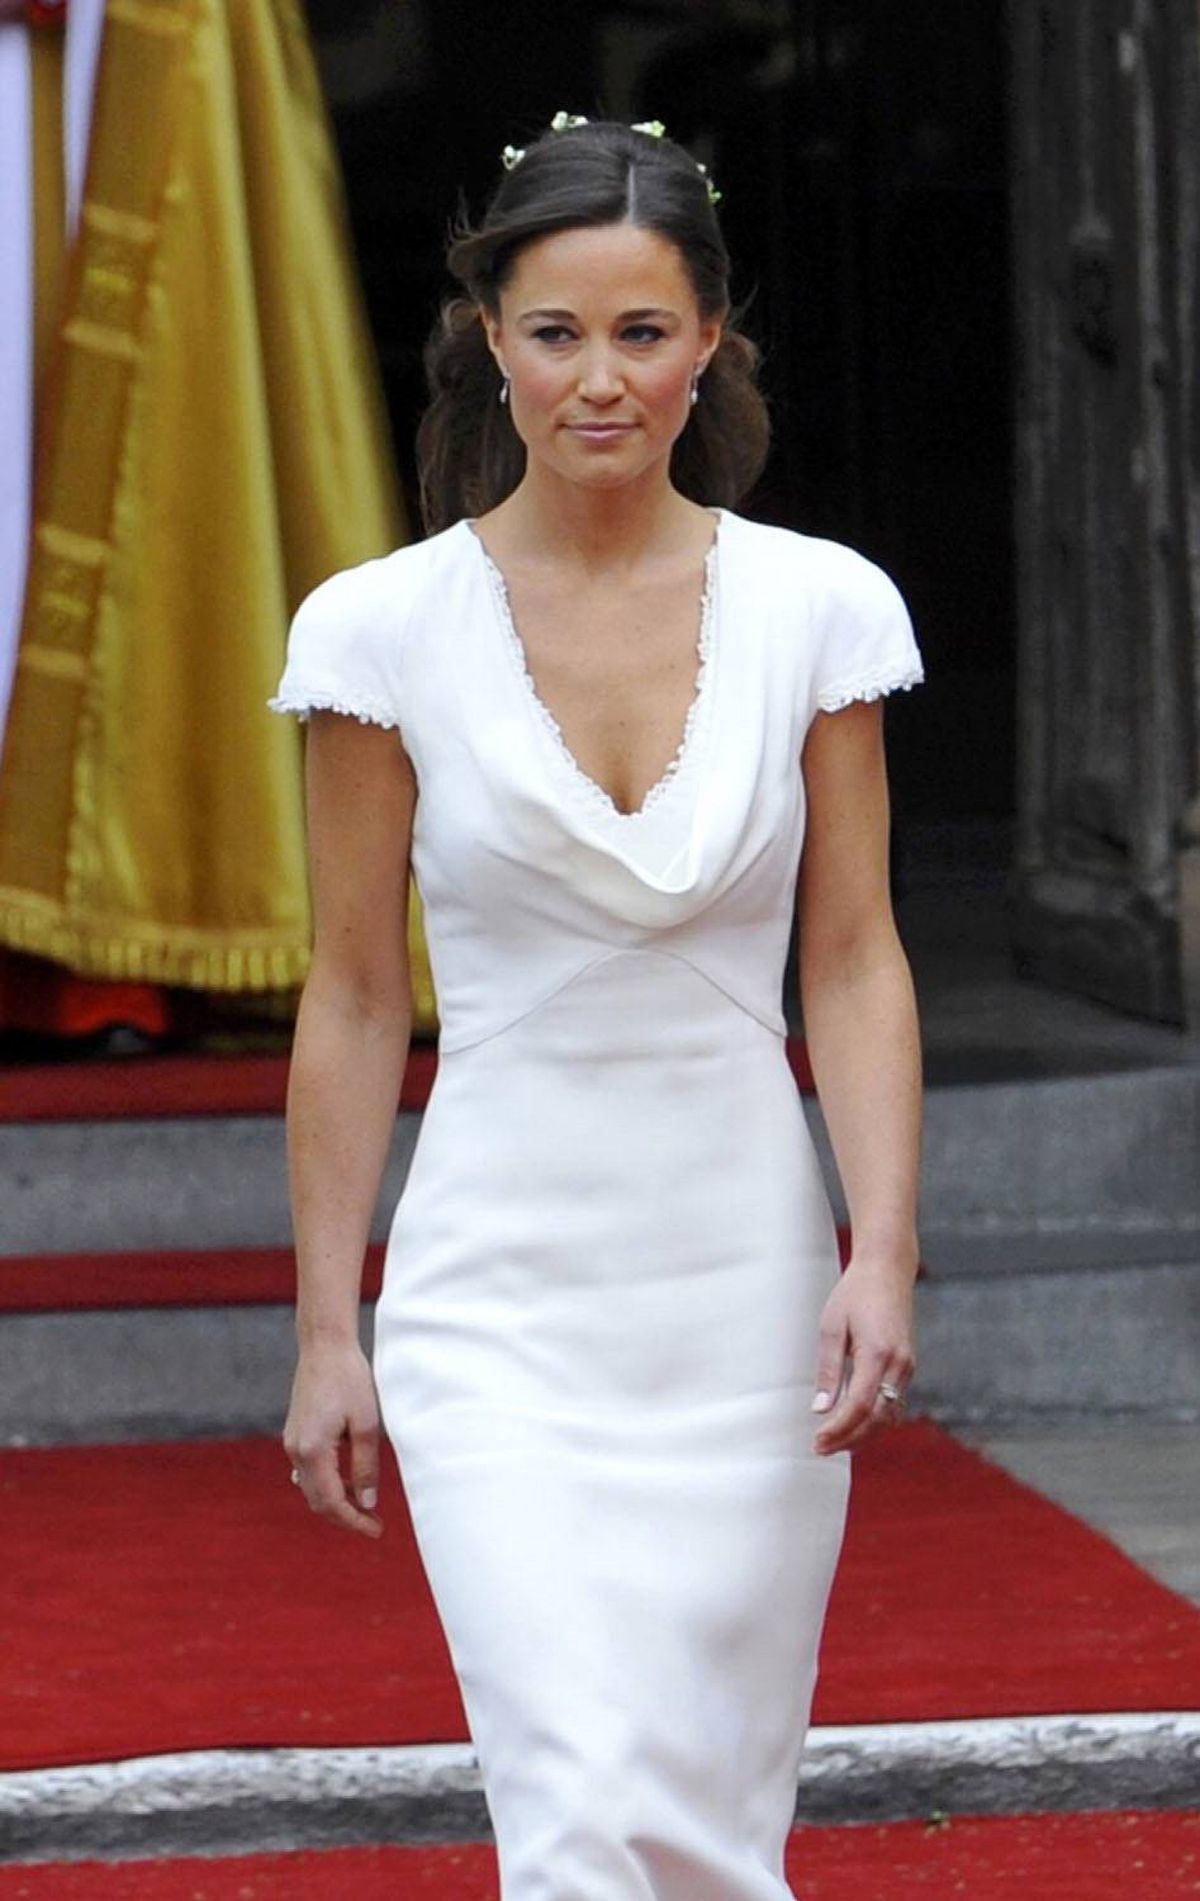 As maid of honour at the royal wedding, Pippa nearly stole the show in a white body-hugging Alexander McQueen gown.